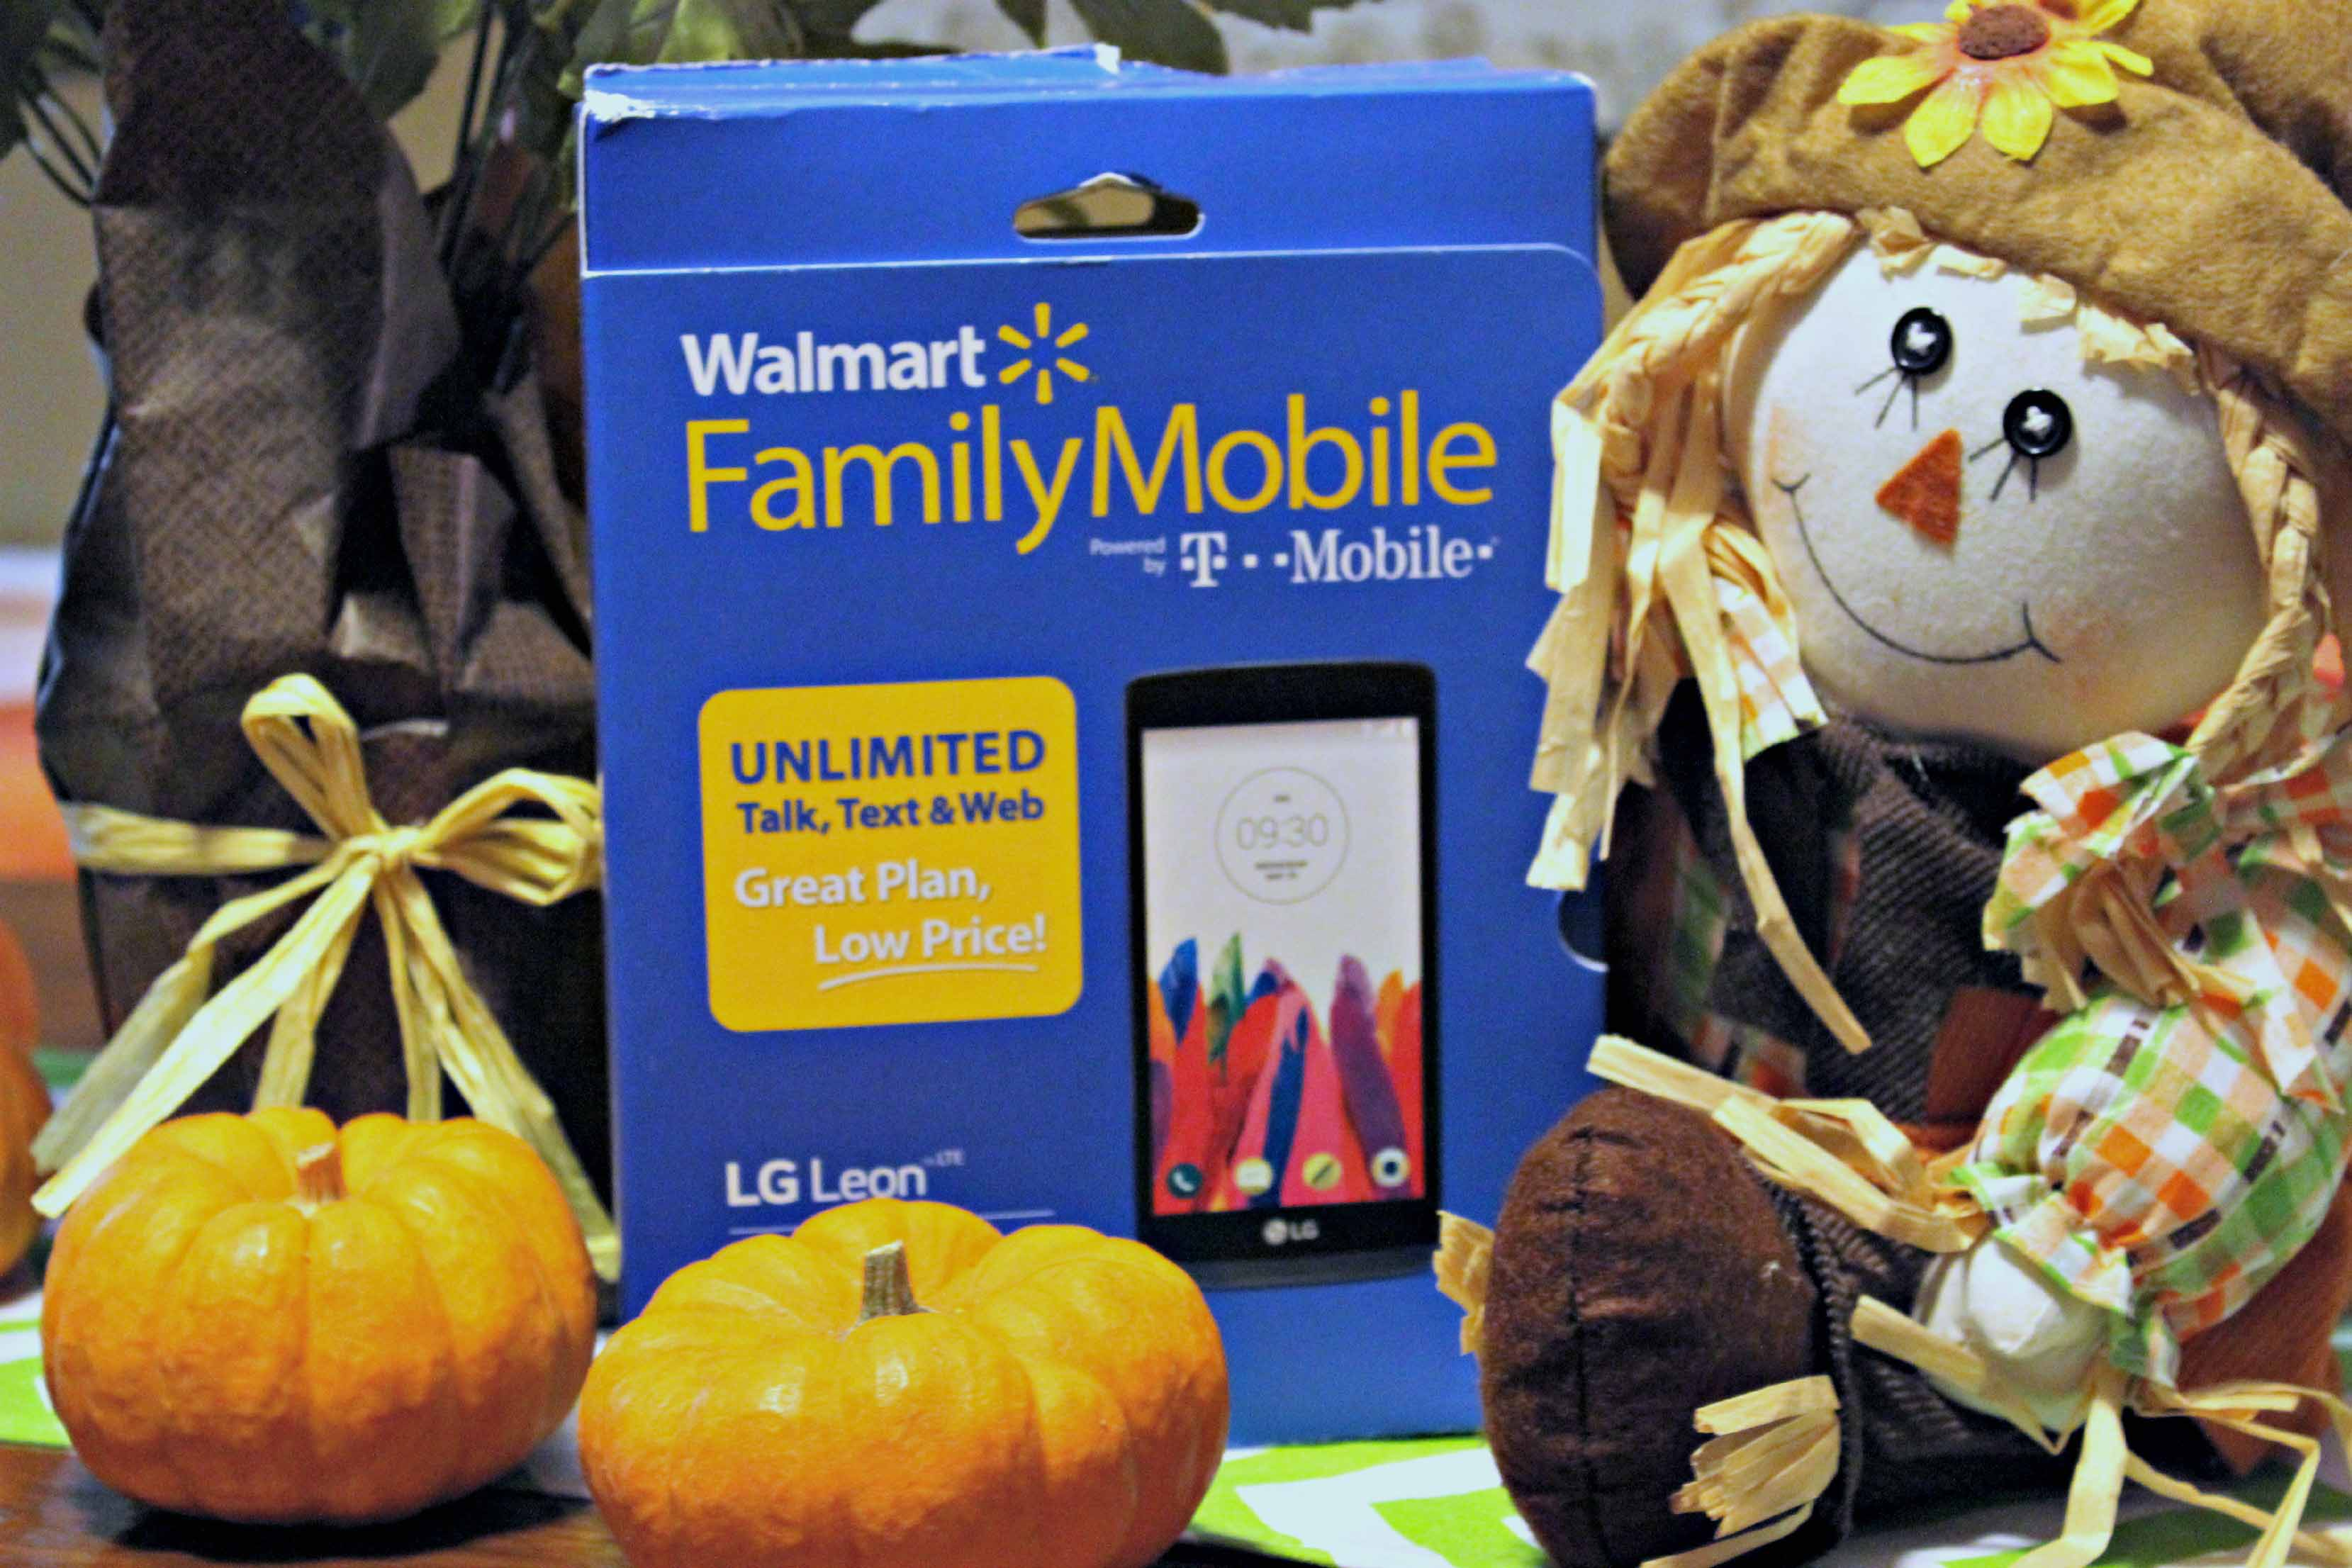 #WMFamilyMobile has been our favorite cell phone plan for years